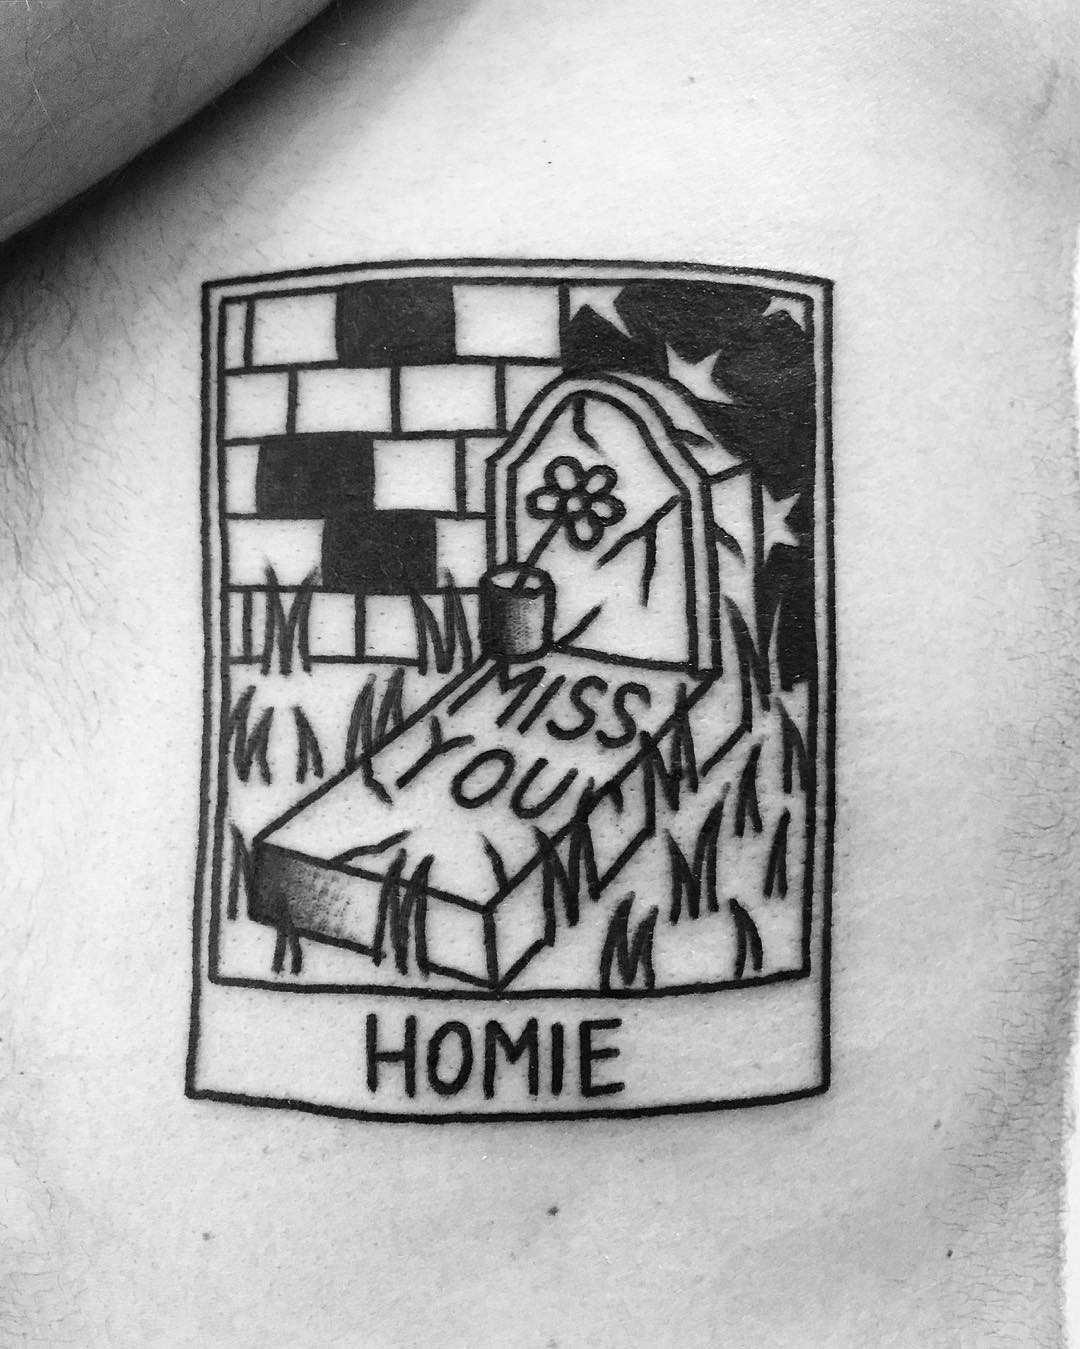 Miss you homie by @themagicrosa